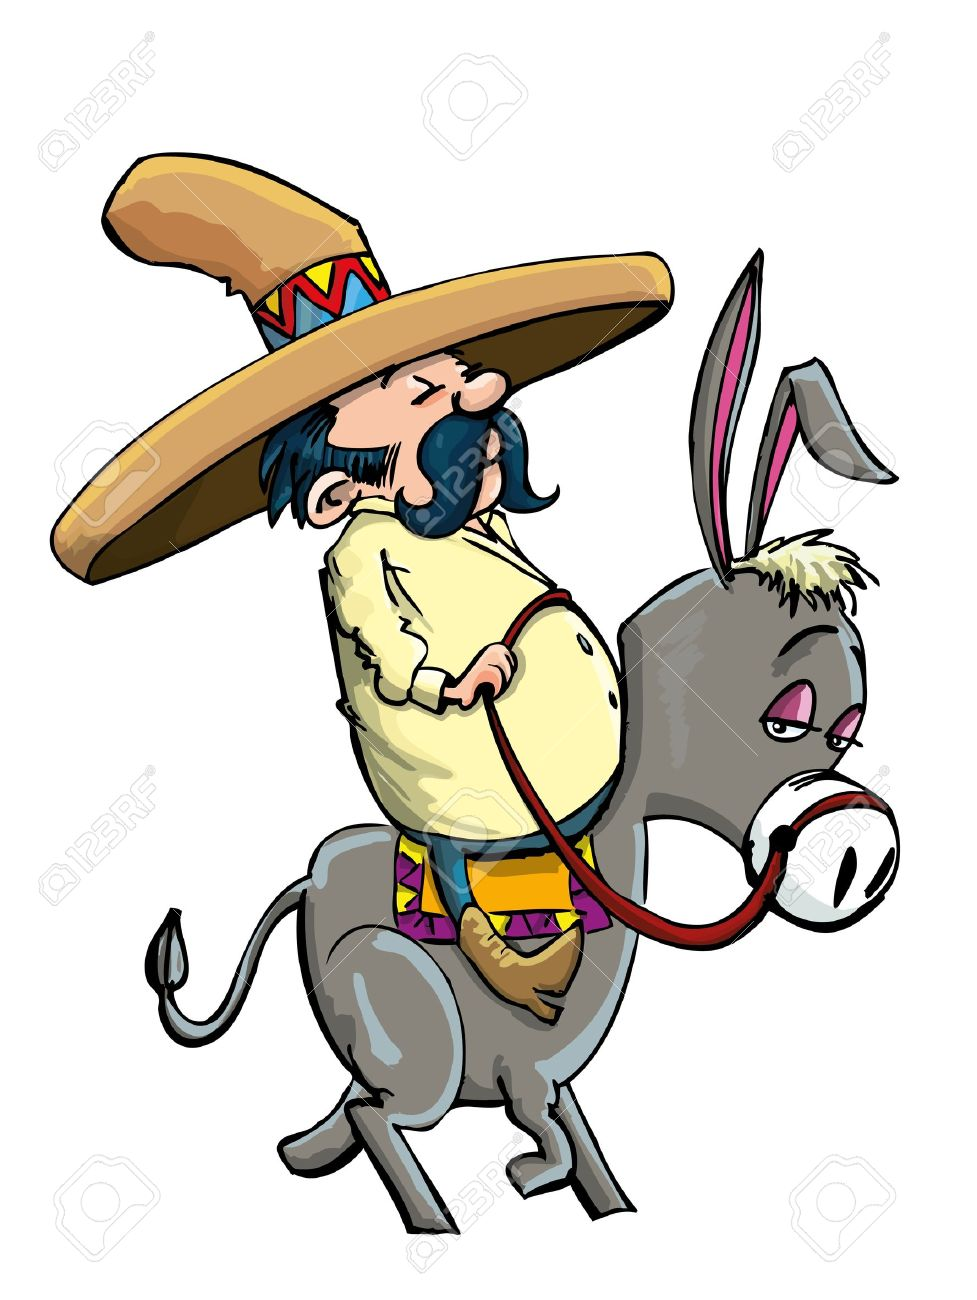 Cartoon Mexican wearing a sombrero riding a donkey. Isolated.